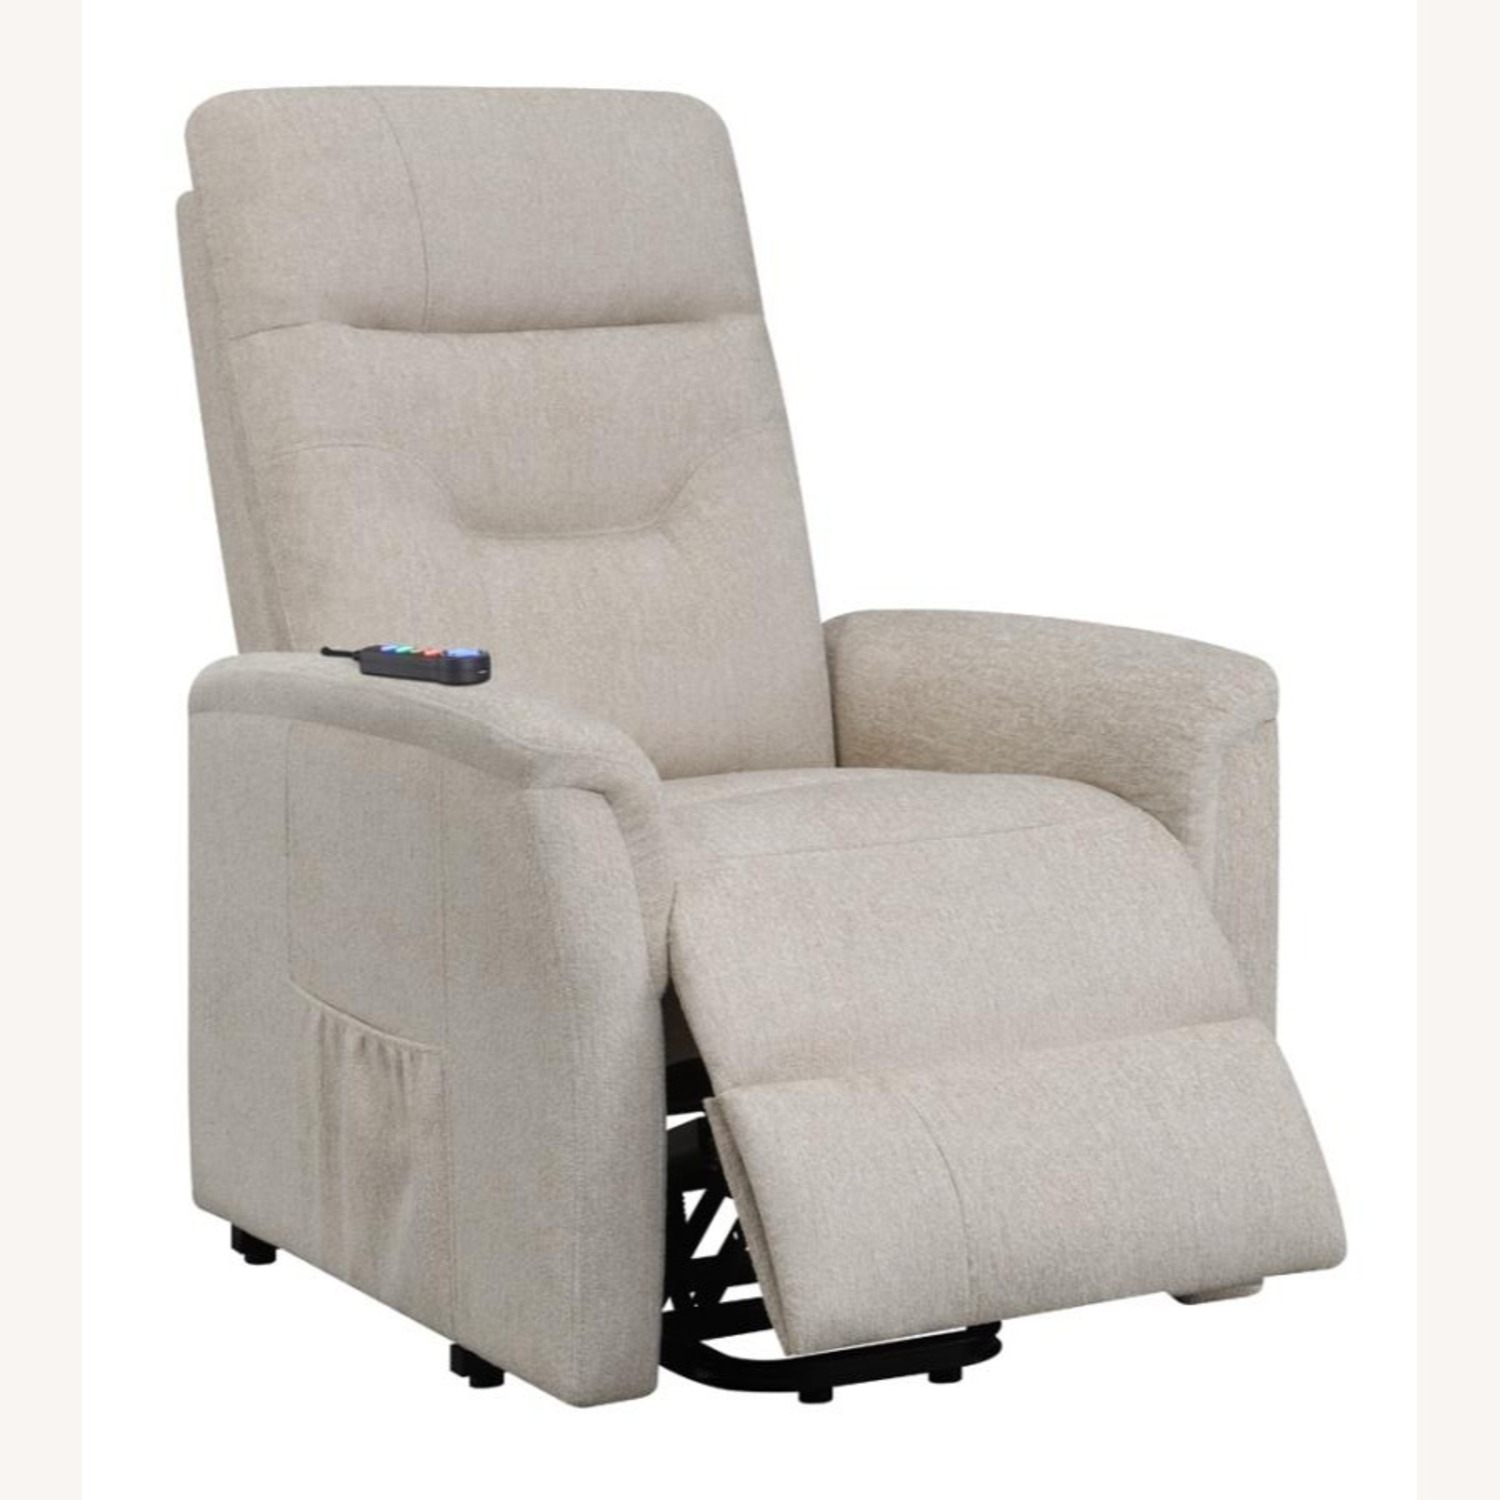 Power Lift Massage Chair In Beige Fabric - image-1